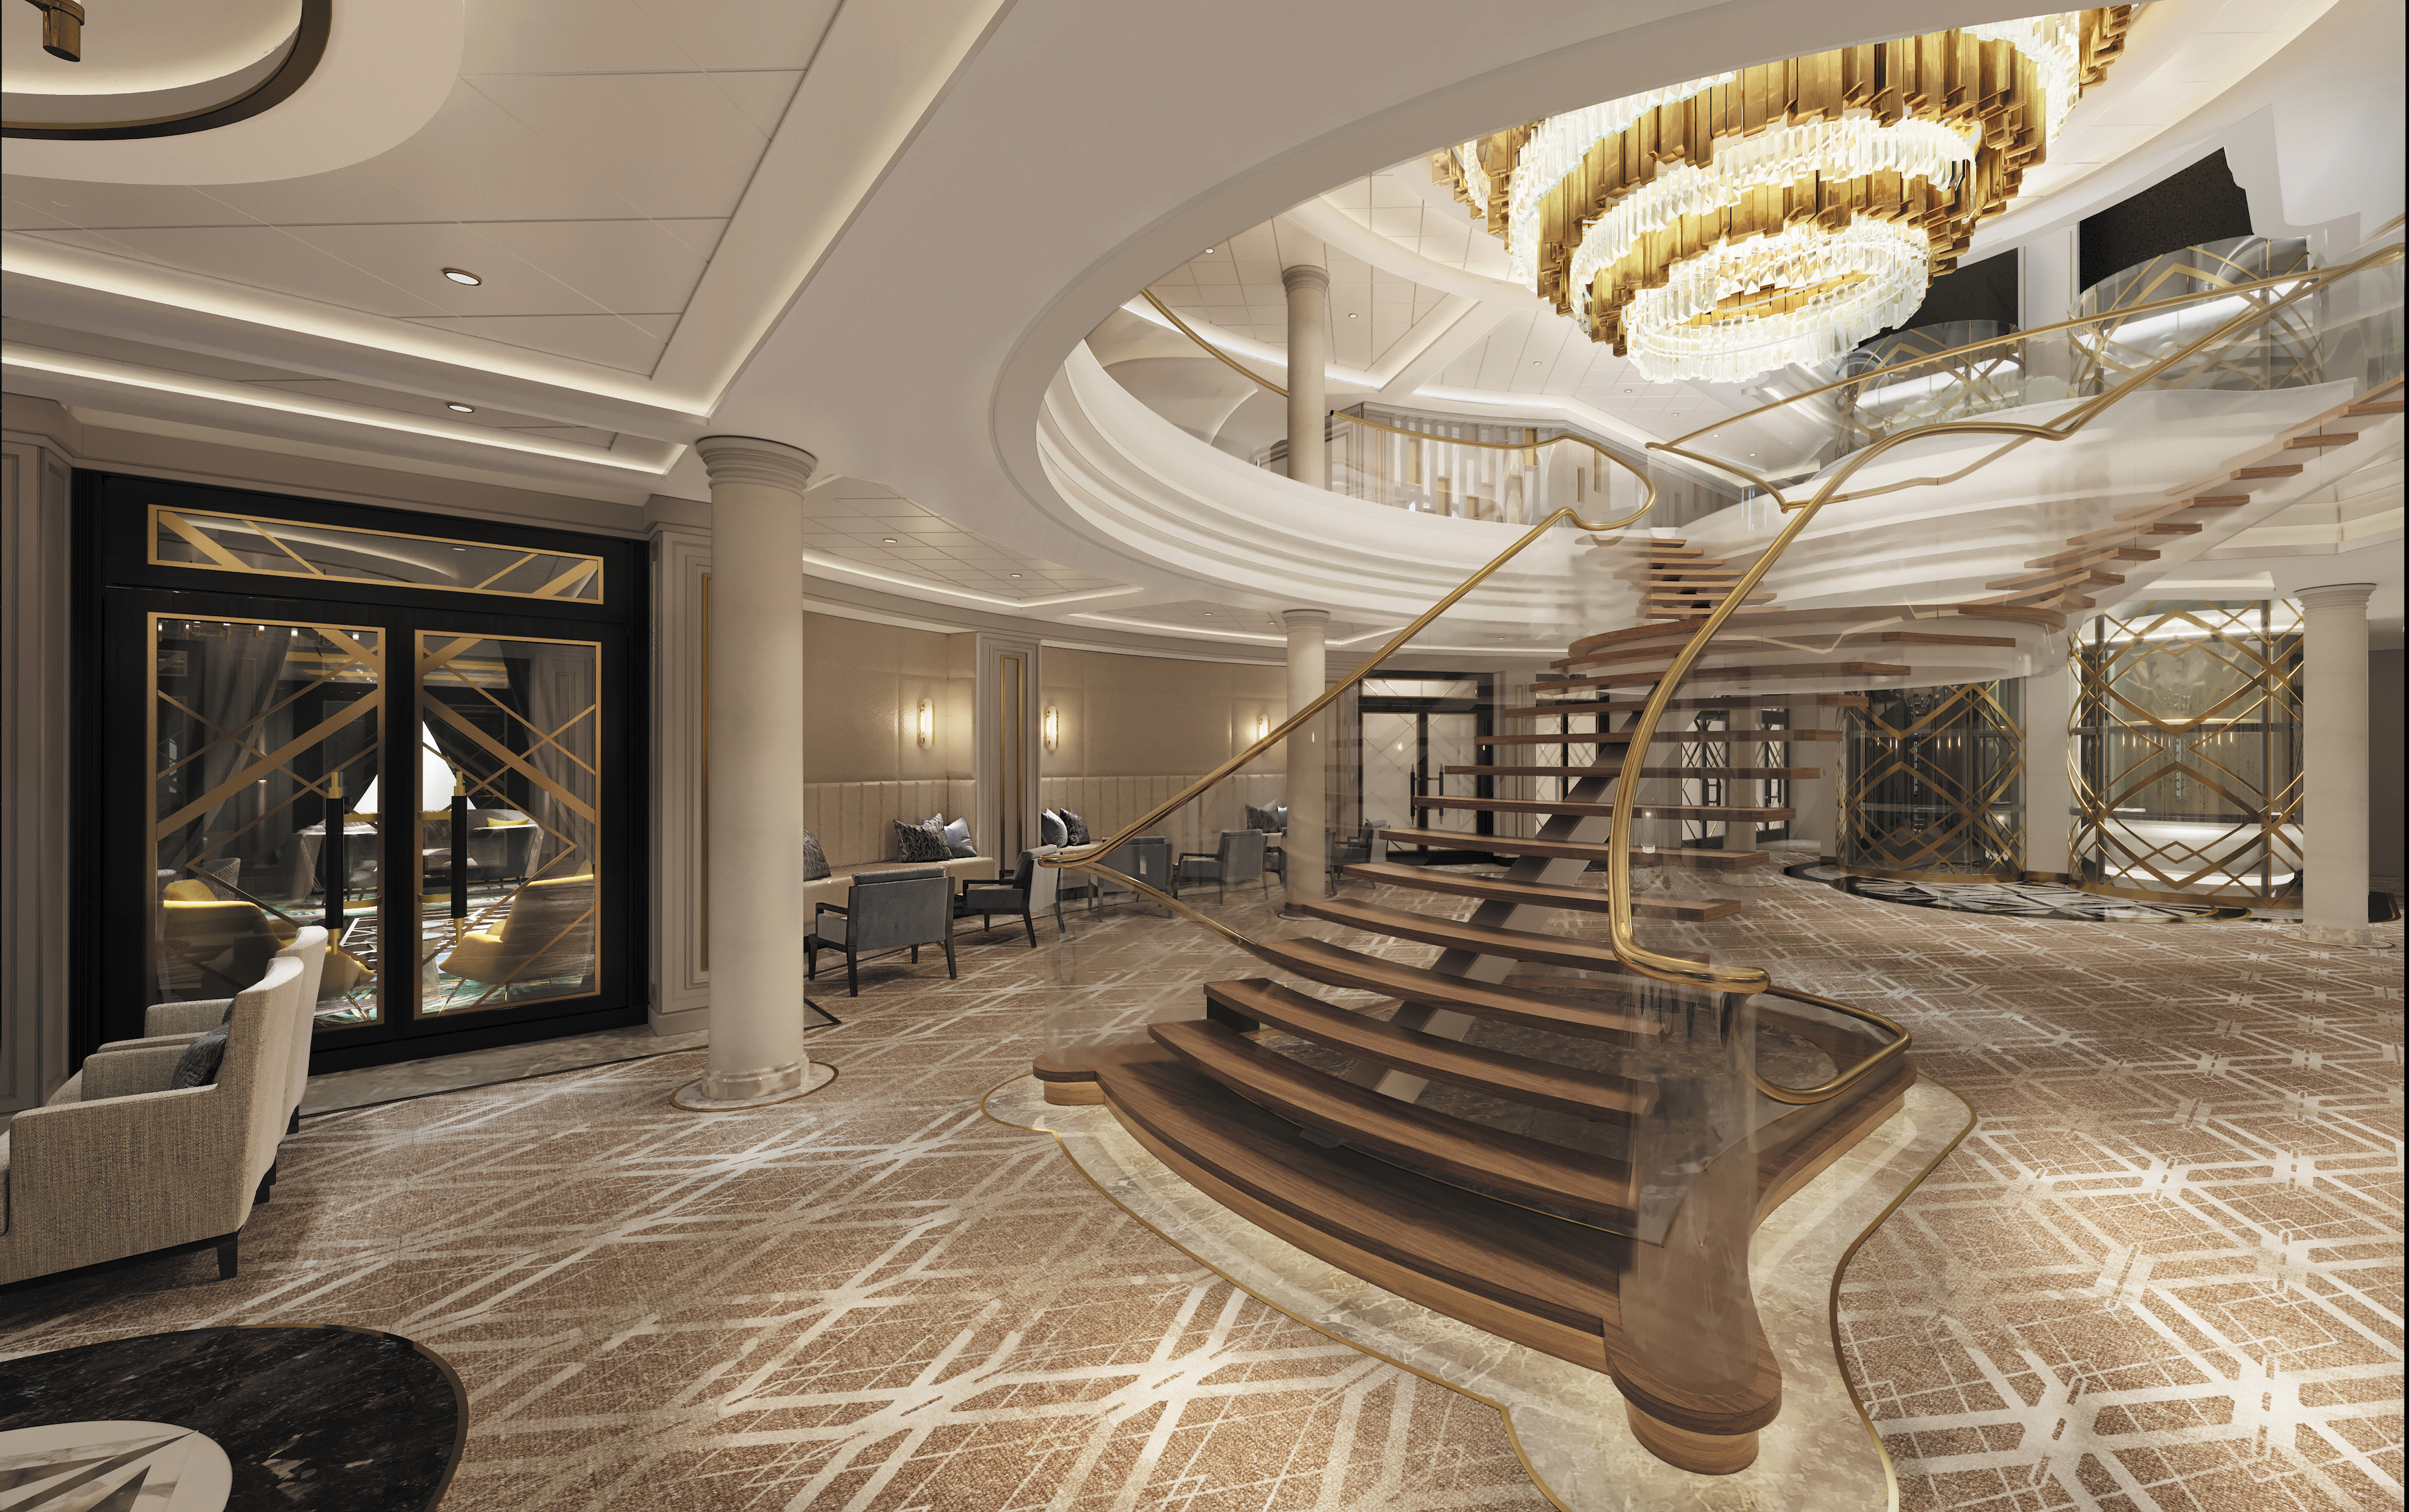 Seven Seas Splendor, interiors, new ship, Regent Cruises